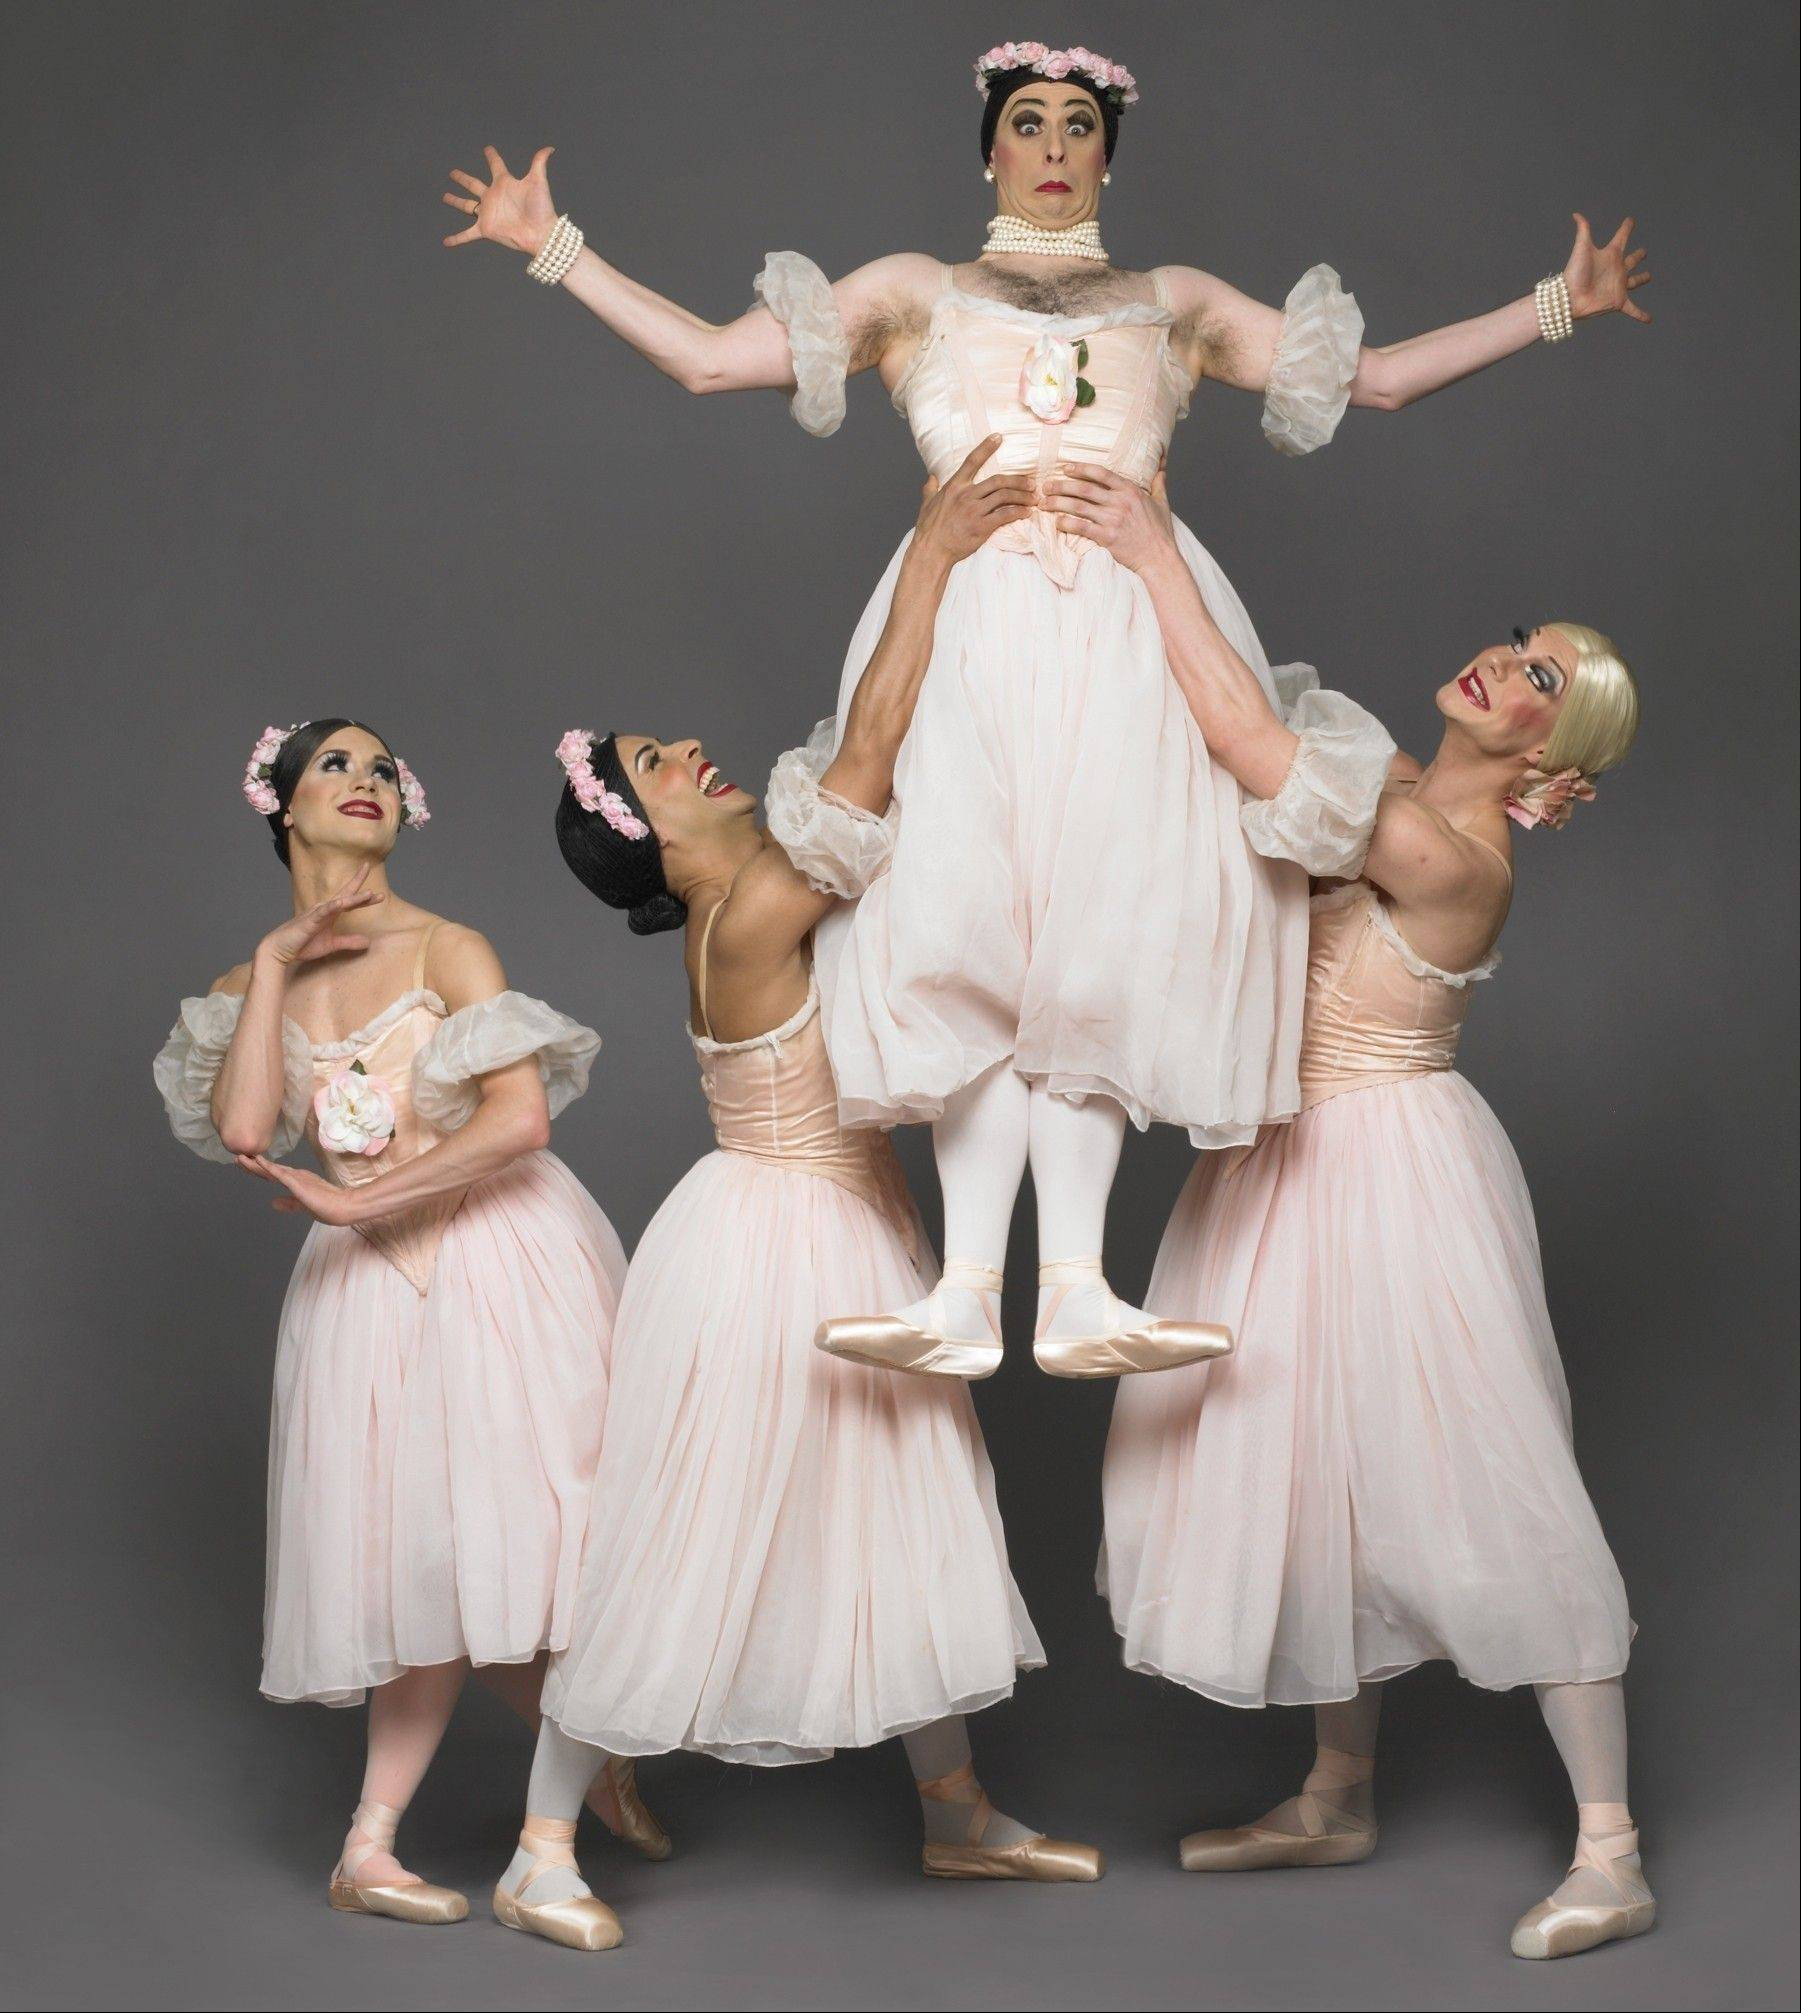 The famed male drag ballet troupe Les Ballets Trockadero de Monte Carlo returns to Millennium Park's Harris Theater for Music and Dance in Chicago on Tuesday, Jan. 24.